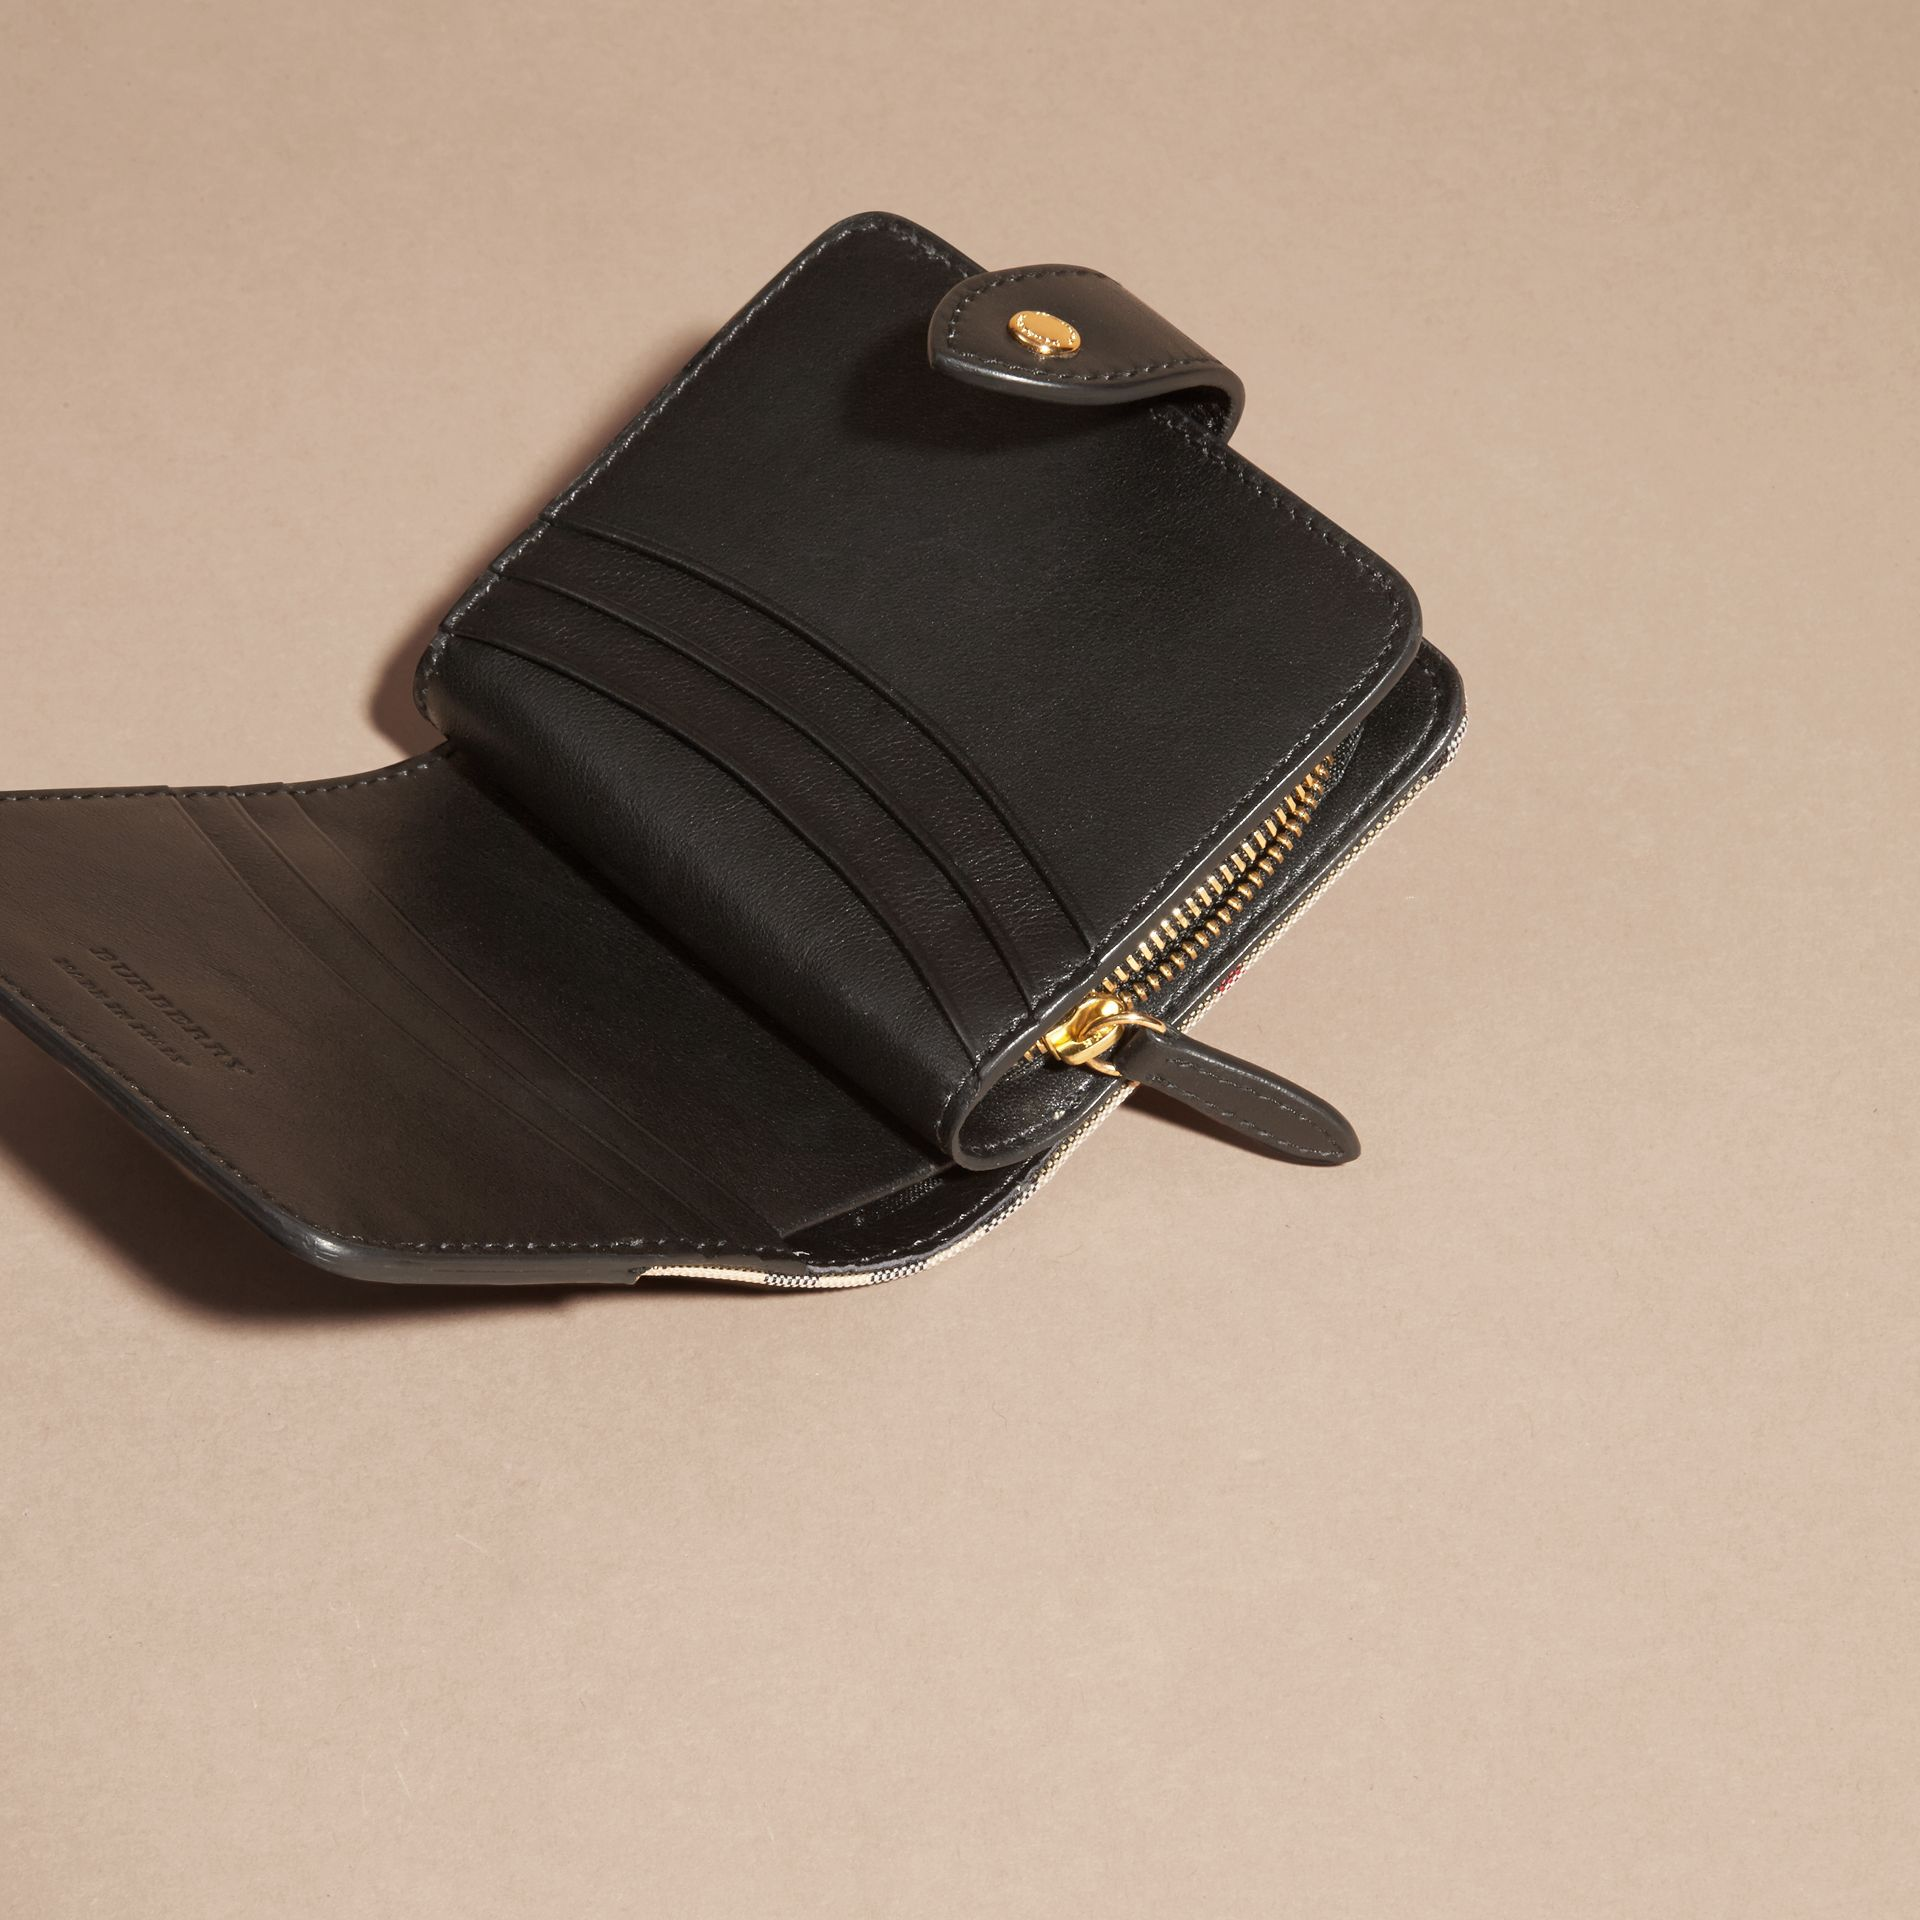 Horseferry Check and Leather Wallet Black - gallery image 10